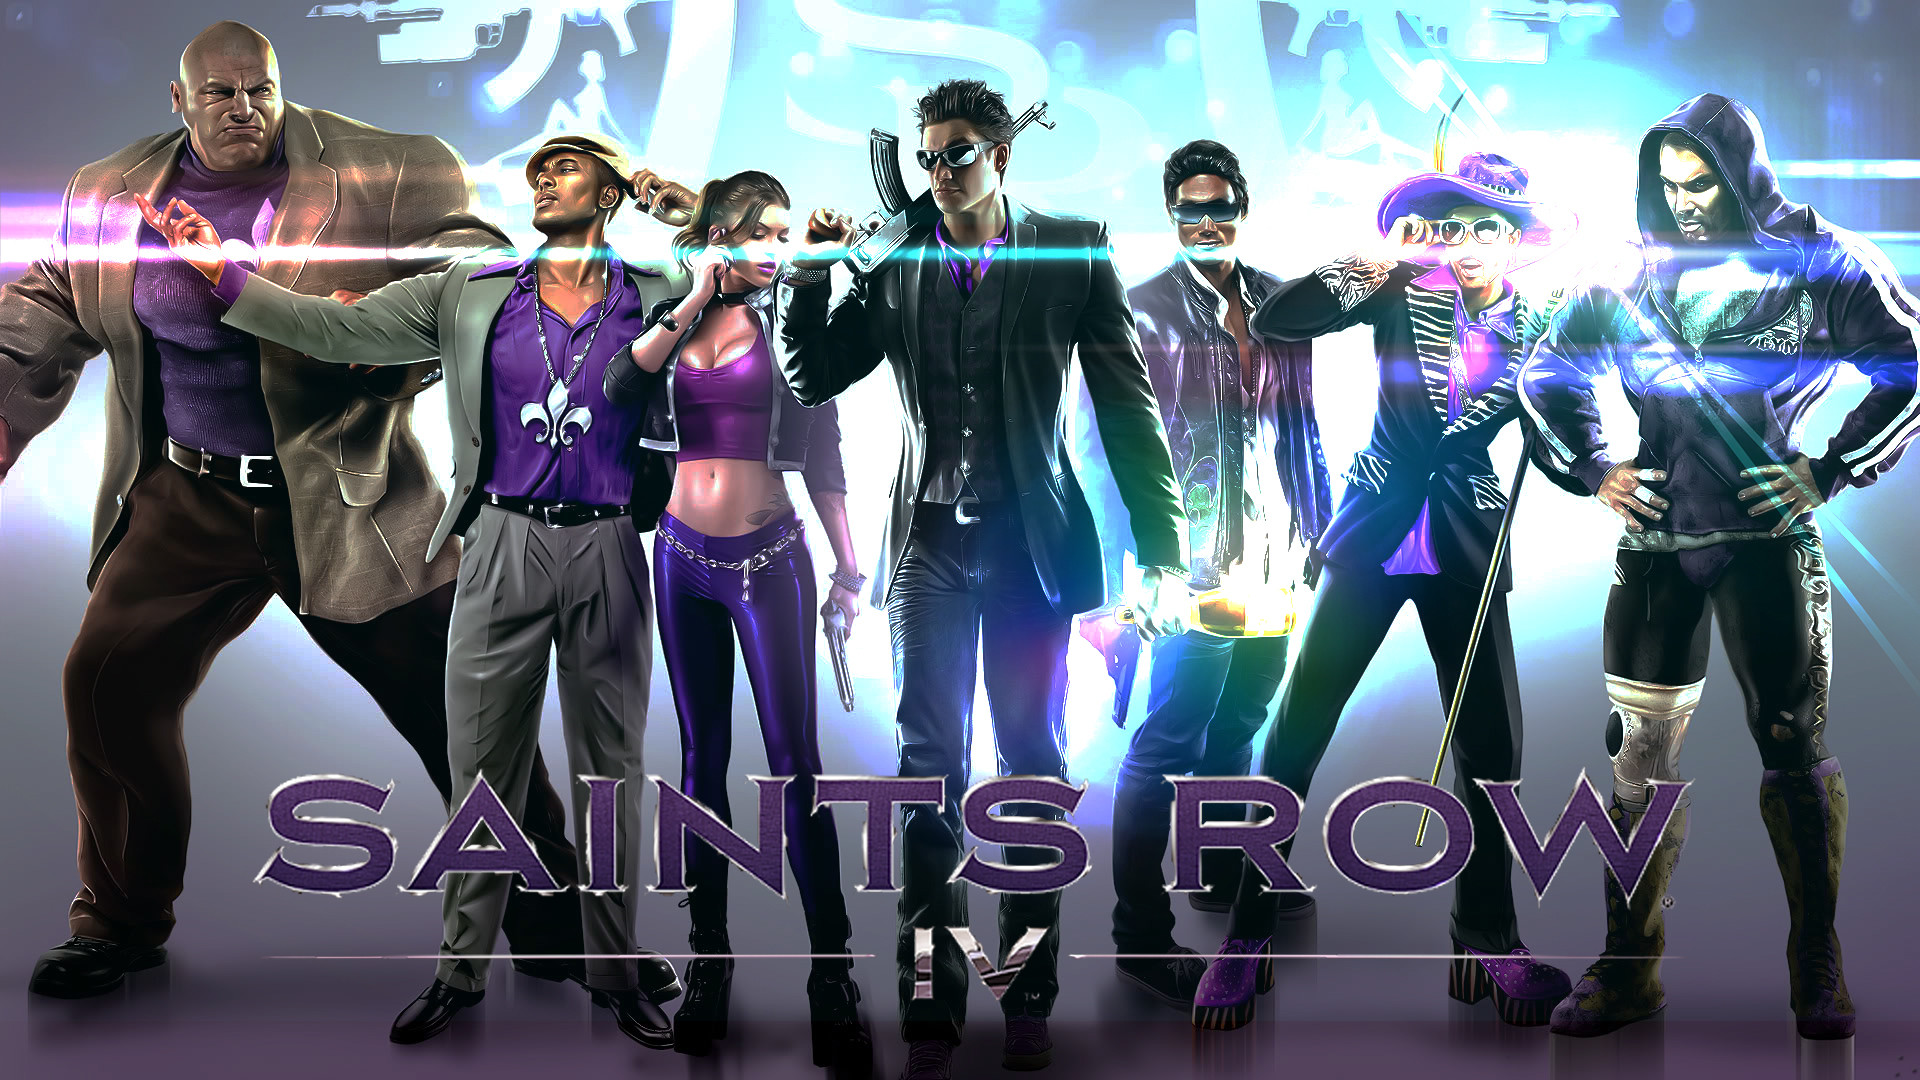 1920x1080 Saints Row 4 HD Wallpaper 1920×1080 1080p. 5.